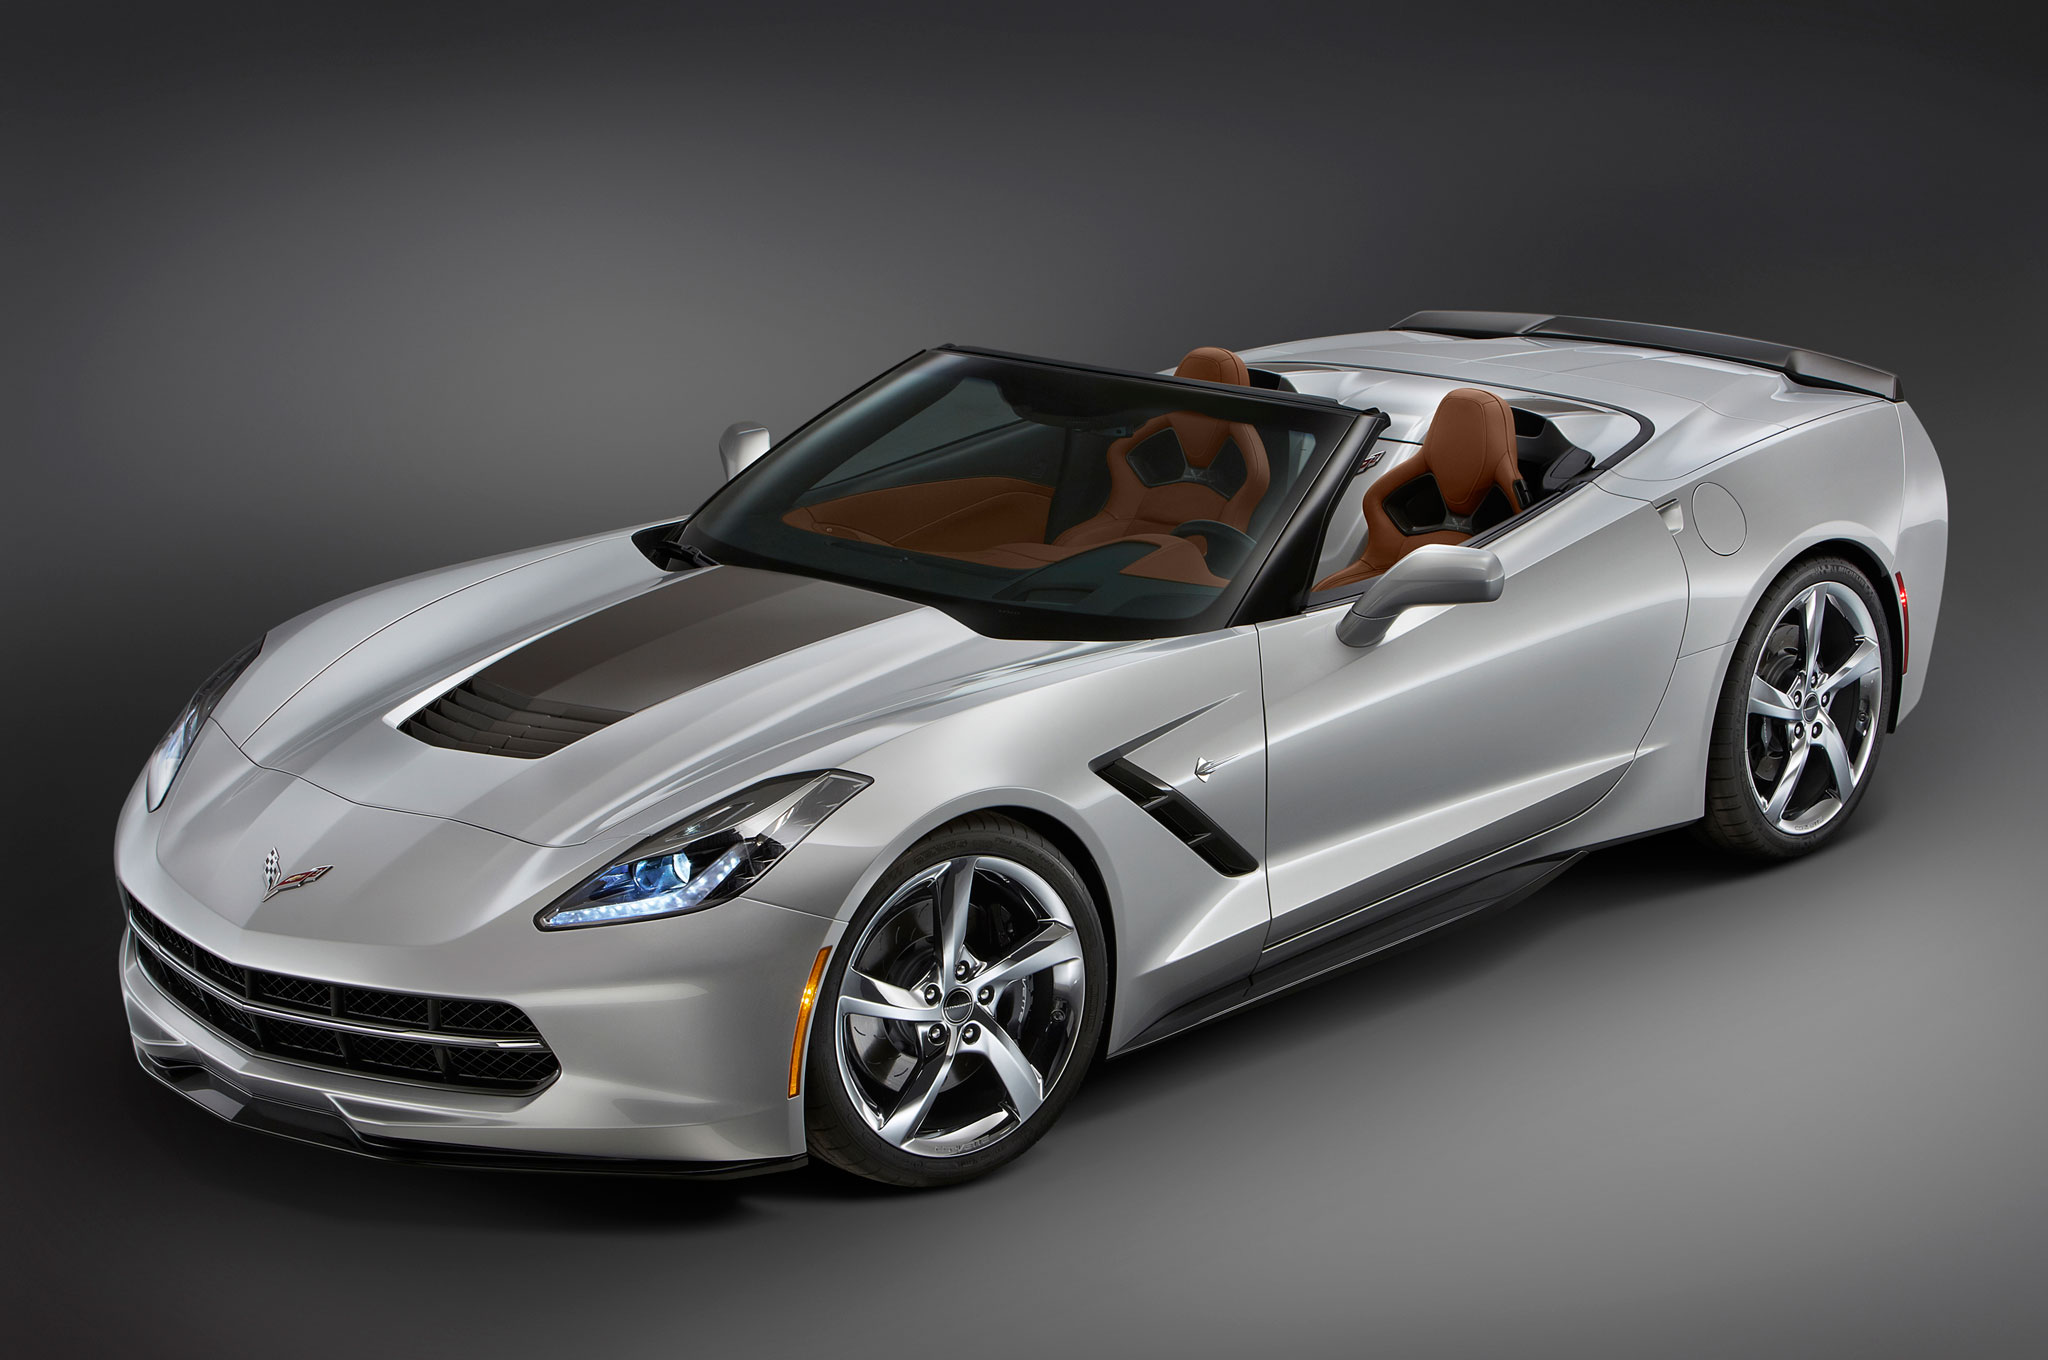 2015 Chevrolet Corvette Stingray Order Guide Leaks HD Wallpapers Download free images and photos [musssic.tk]